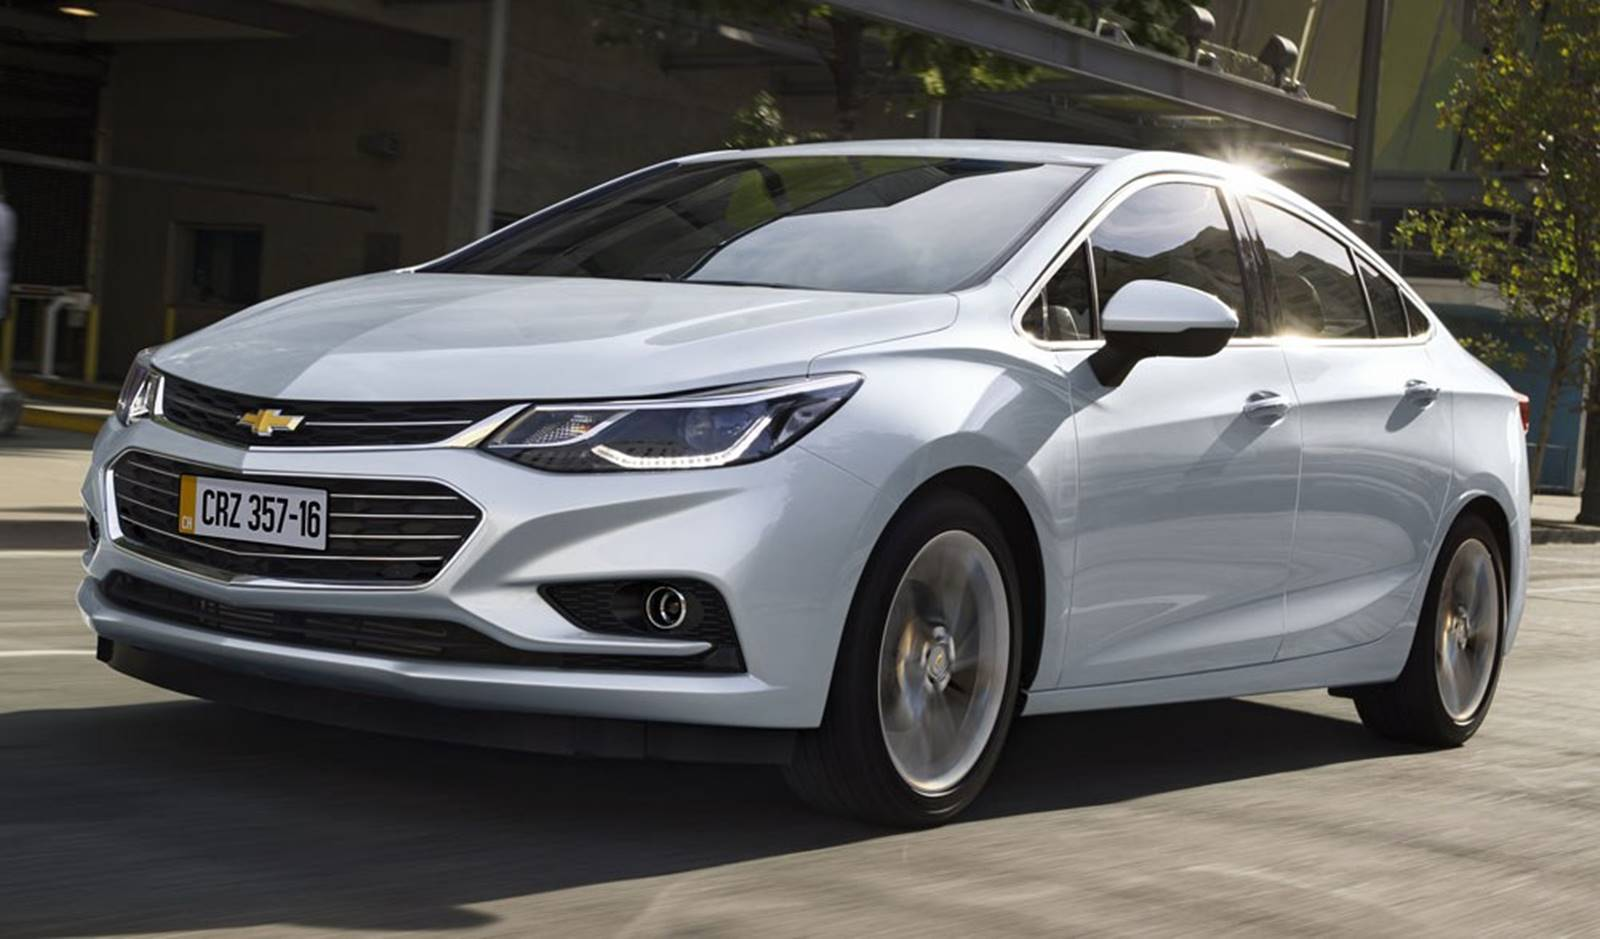 Carros Ten Chega O Novo Chevrolet Cruze Sedan